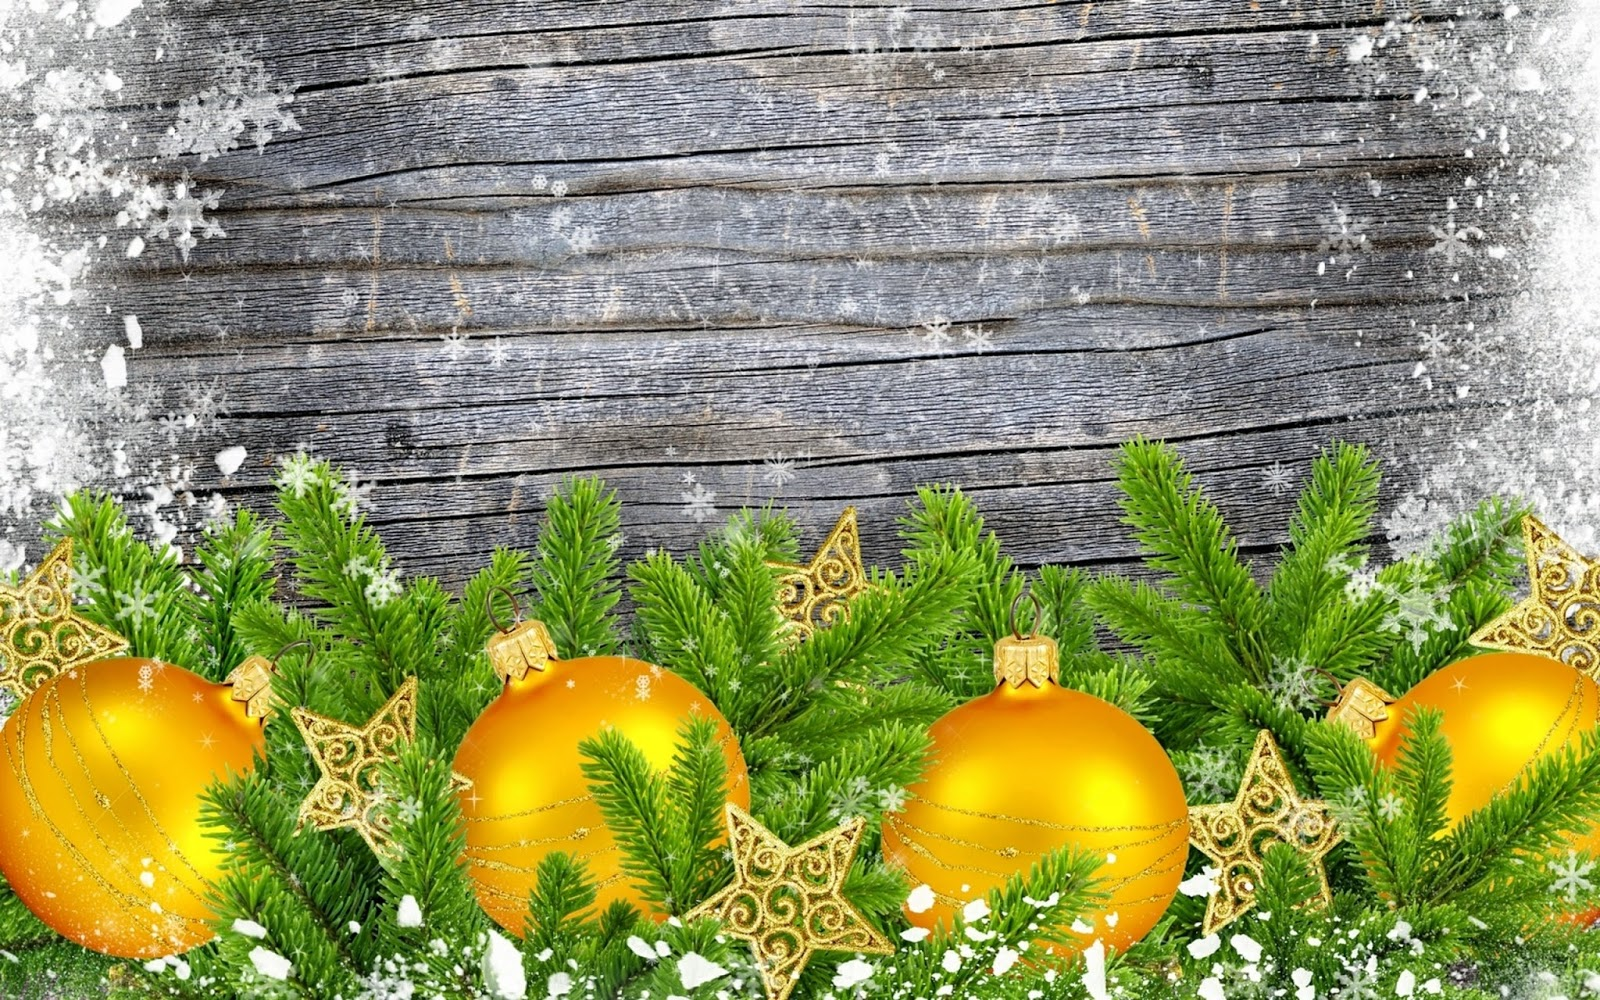 Garland-design-Christmas-theme-vector-stock-image-for-quotes-writing-wishes-on-pictures-free-download.jpg